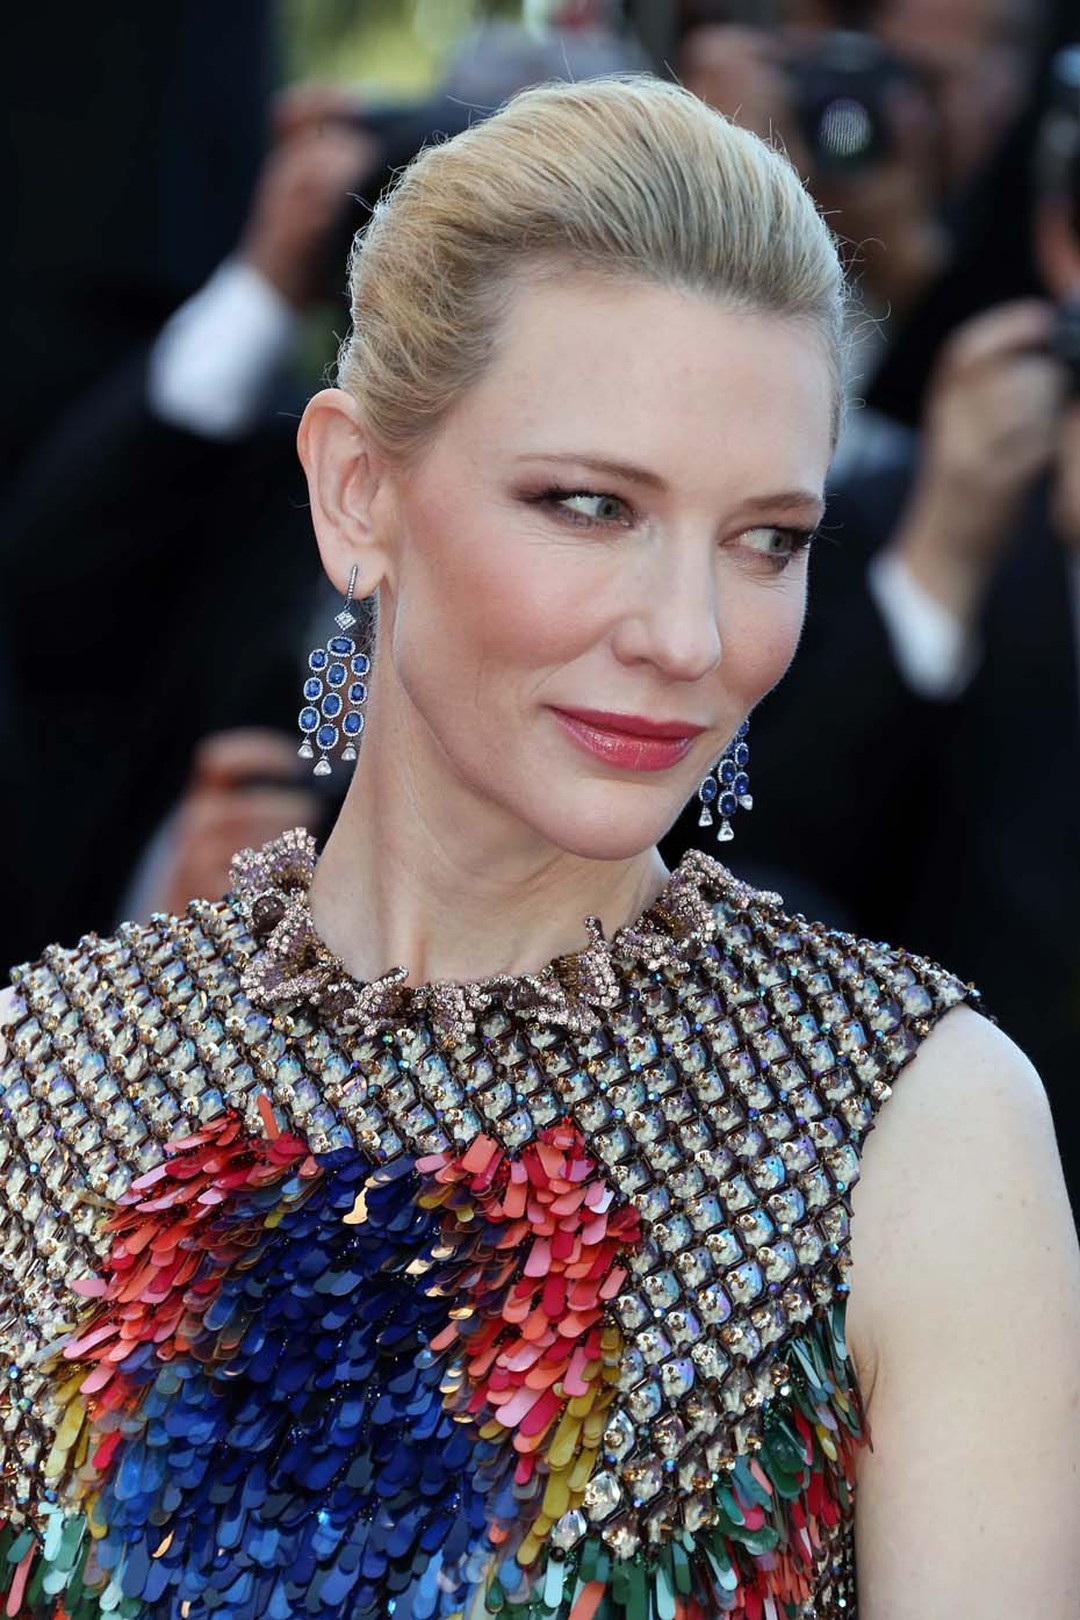 With a slicked back up-do, Cate Blanchett showed off her Chopard sapphire drop earrings at the premiere of How to Train Your Dragon 2, which perfectly complimented the colourful sequins on her Givenchy dress